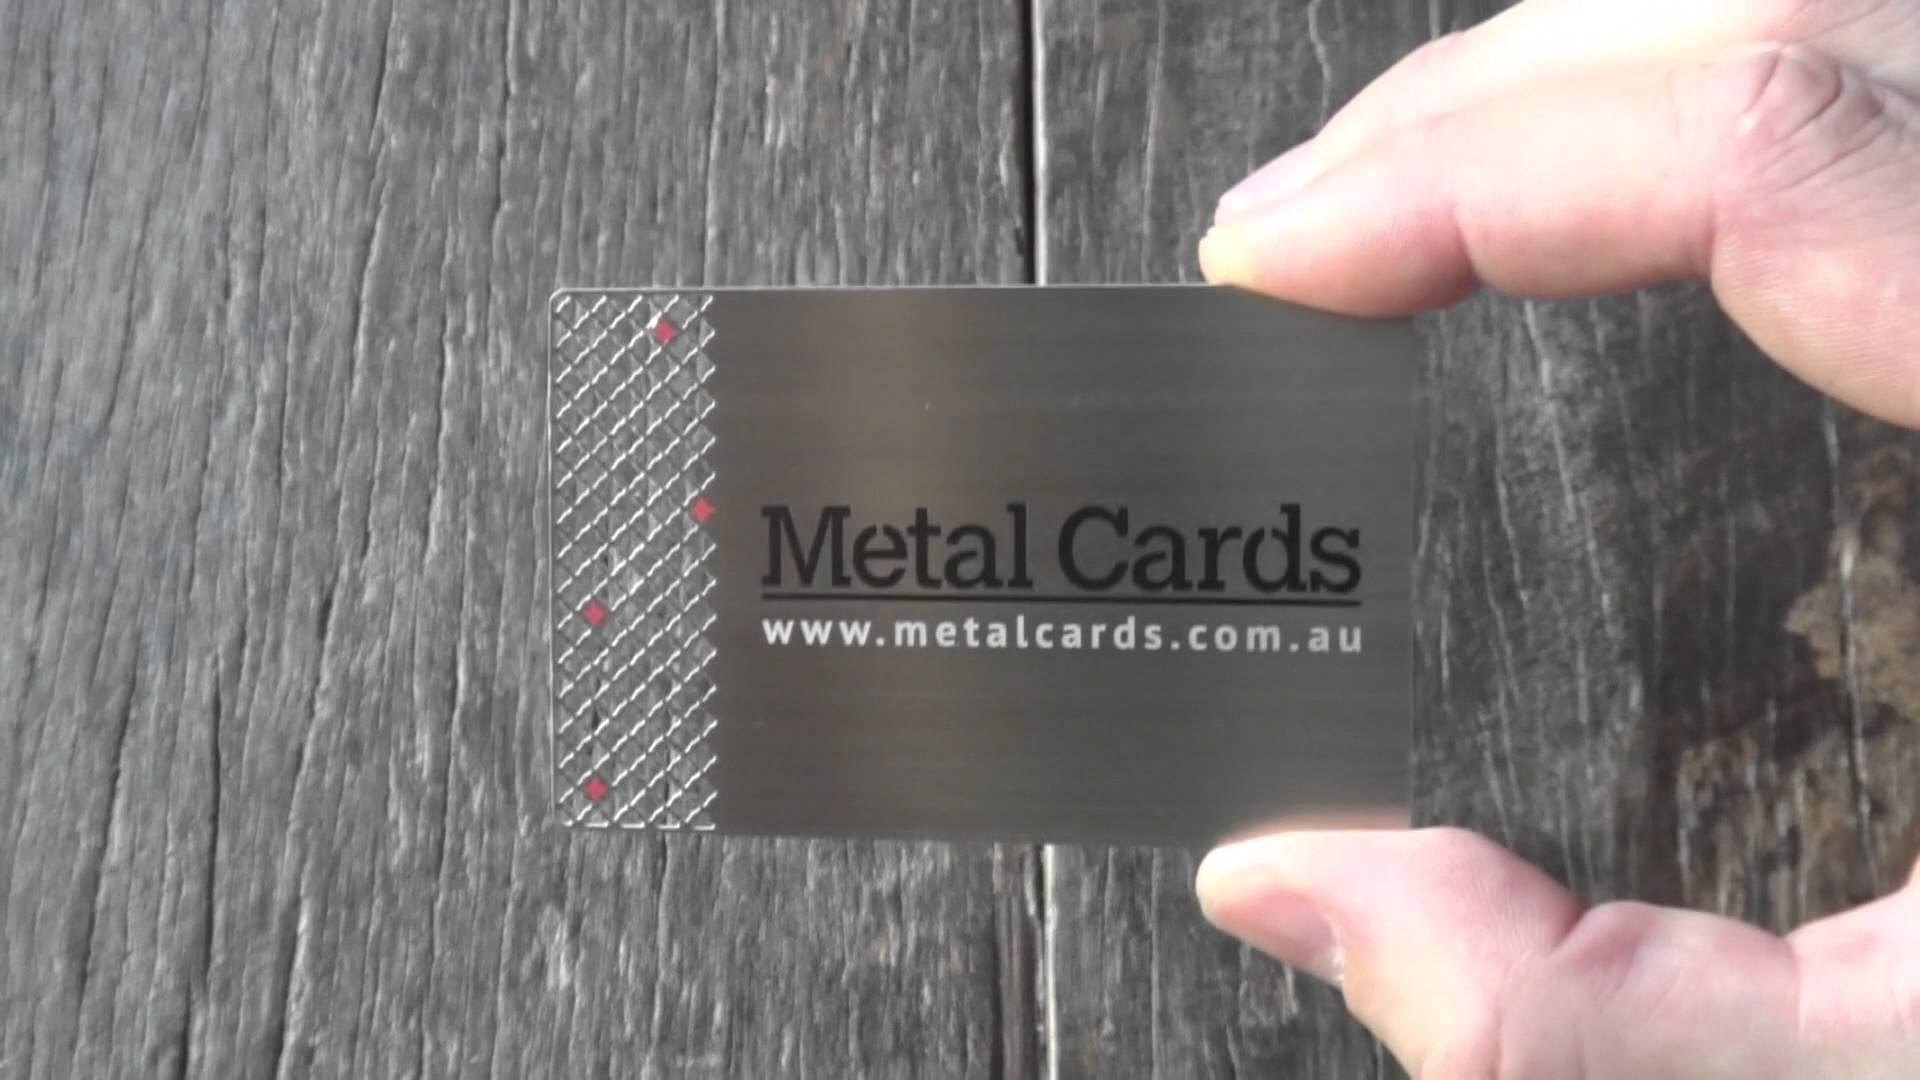 Stainless steel business card newcore global pvt ltd stainless steel business card reheart Gallery